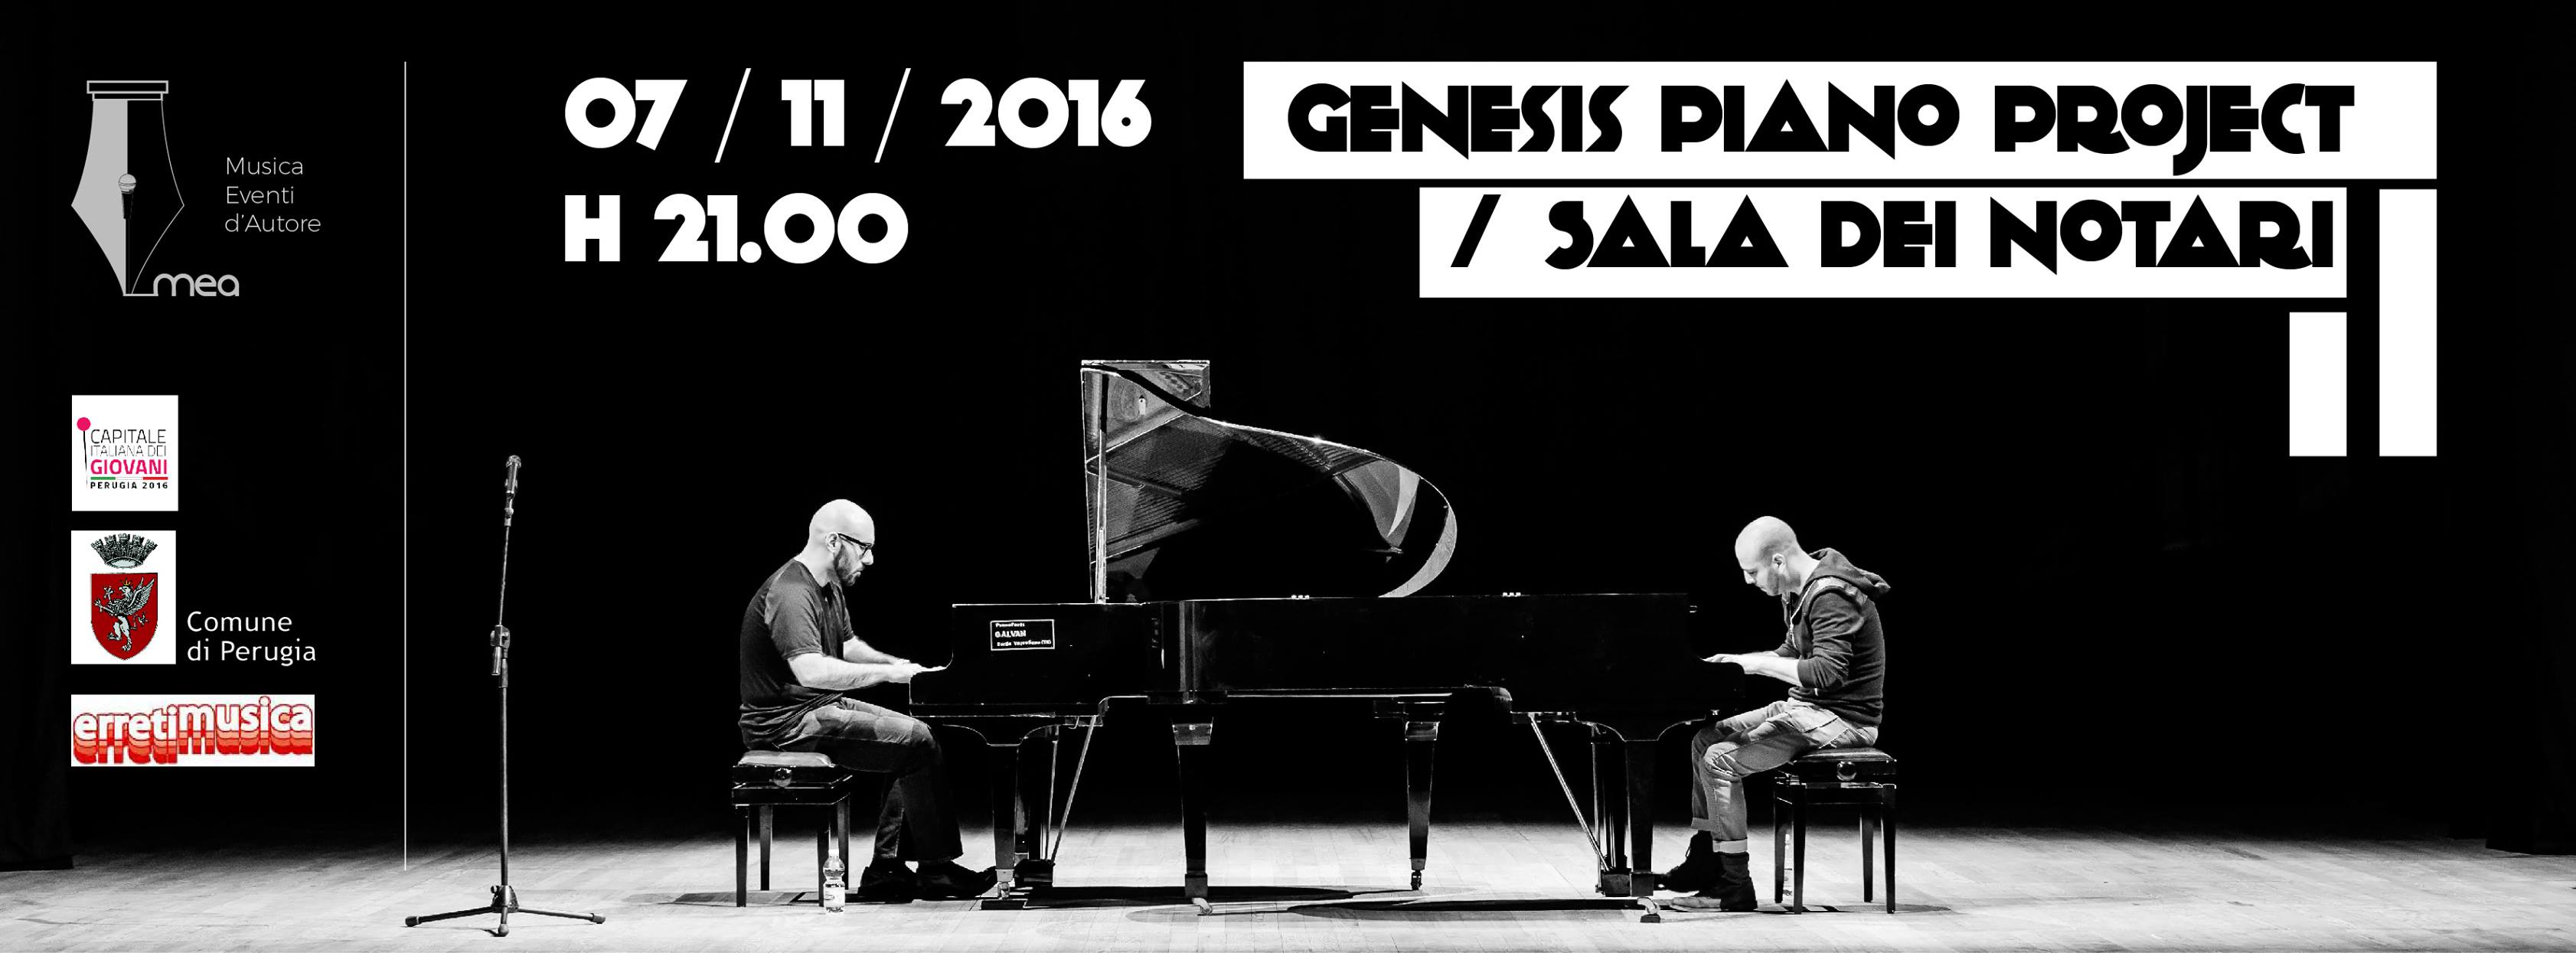 GENESIS PIANO PROJECT